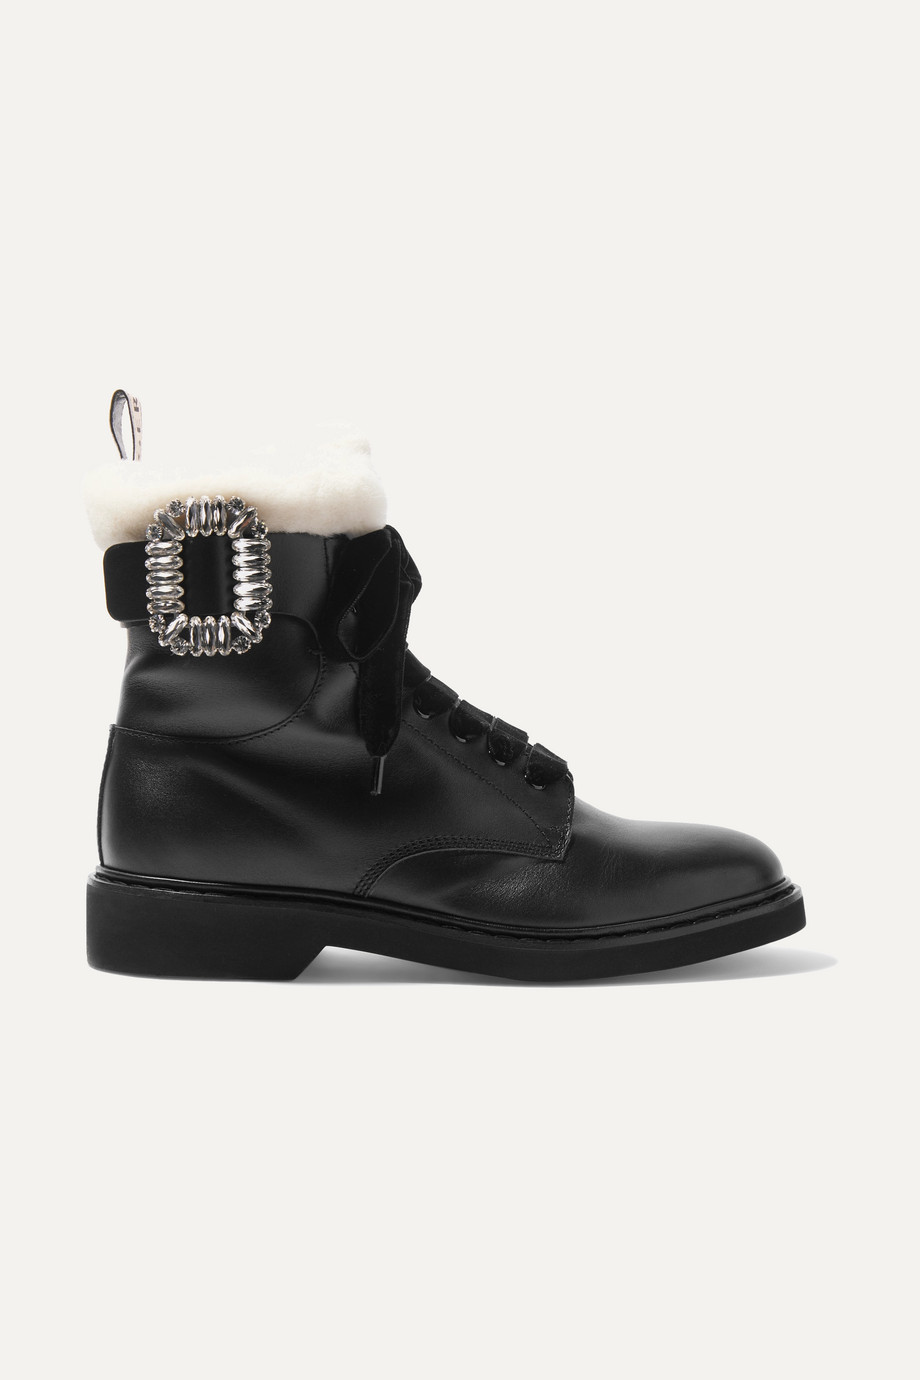 Roger Vivier Ranger shearling-lined crystal-embellished leather ankle boots